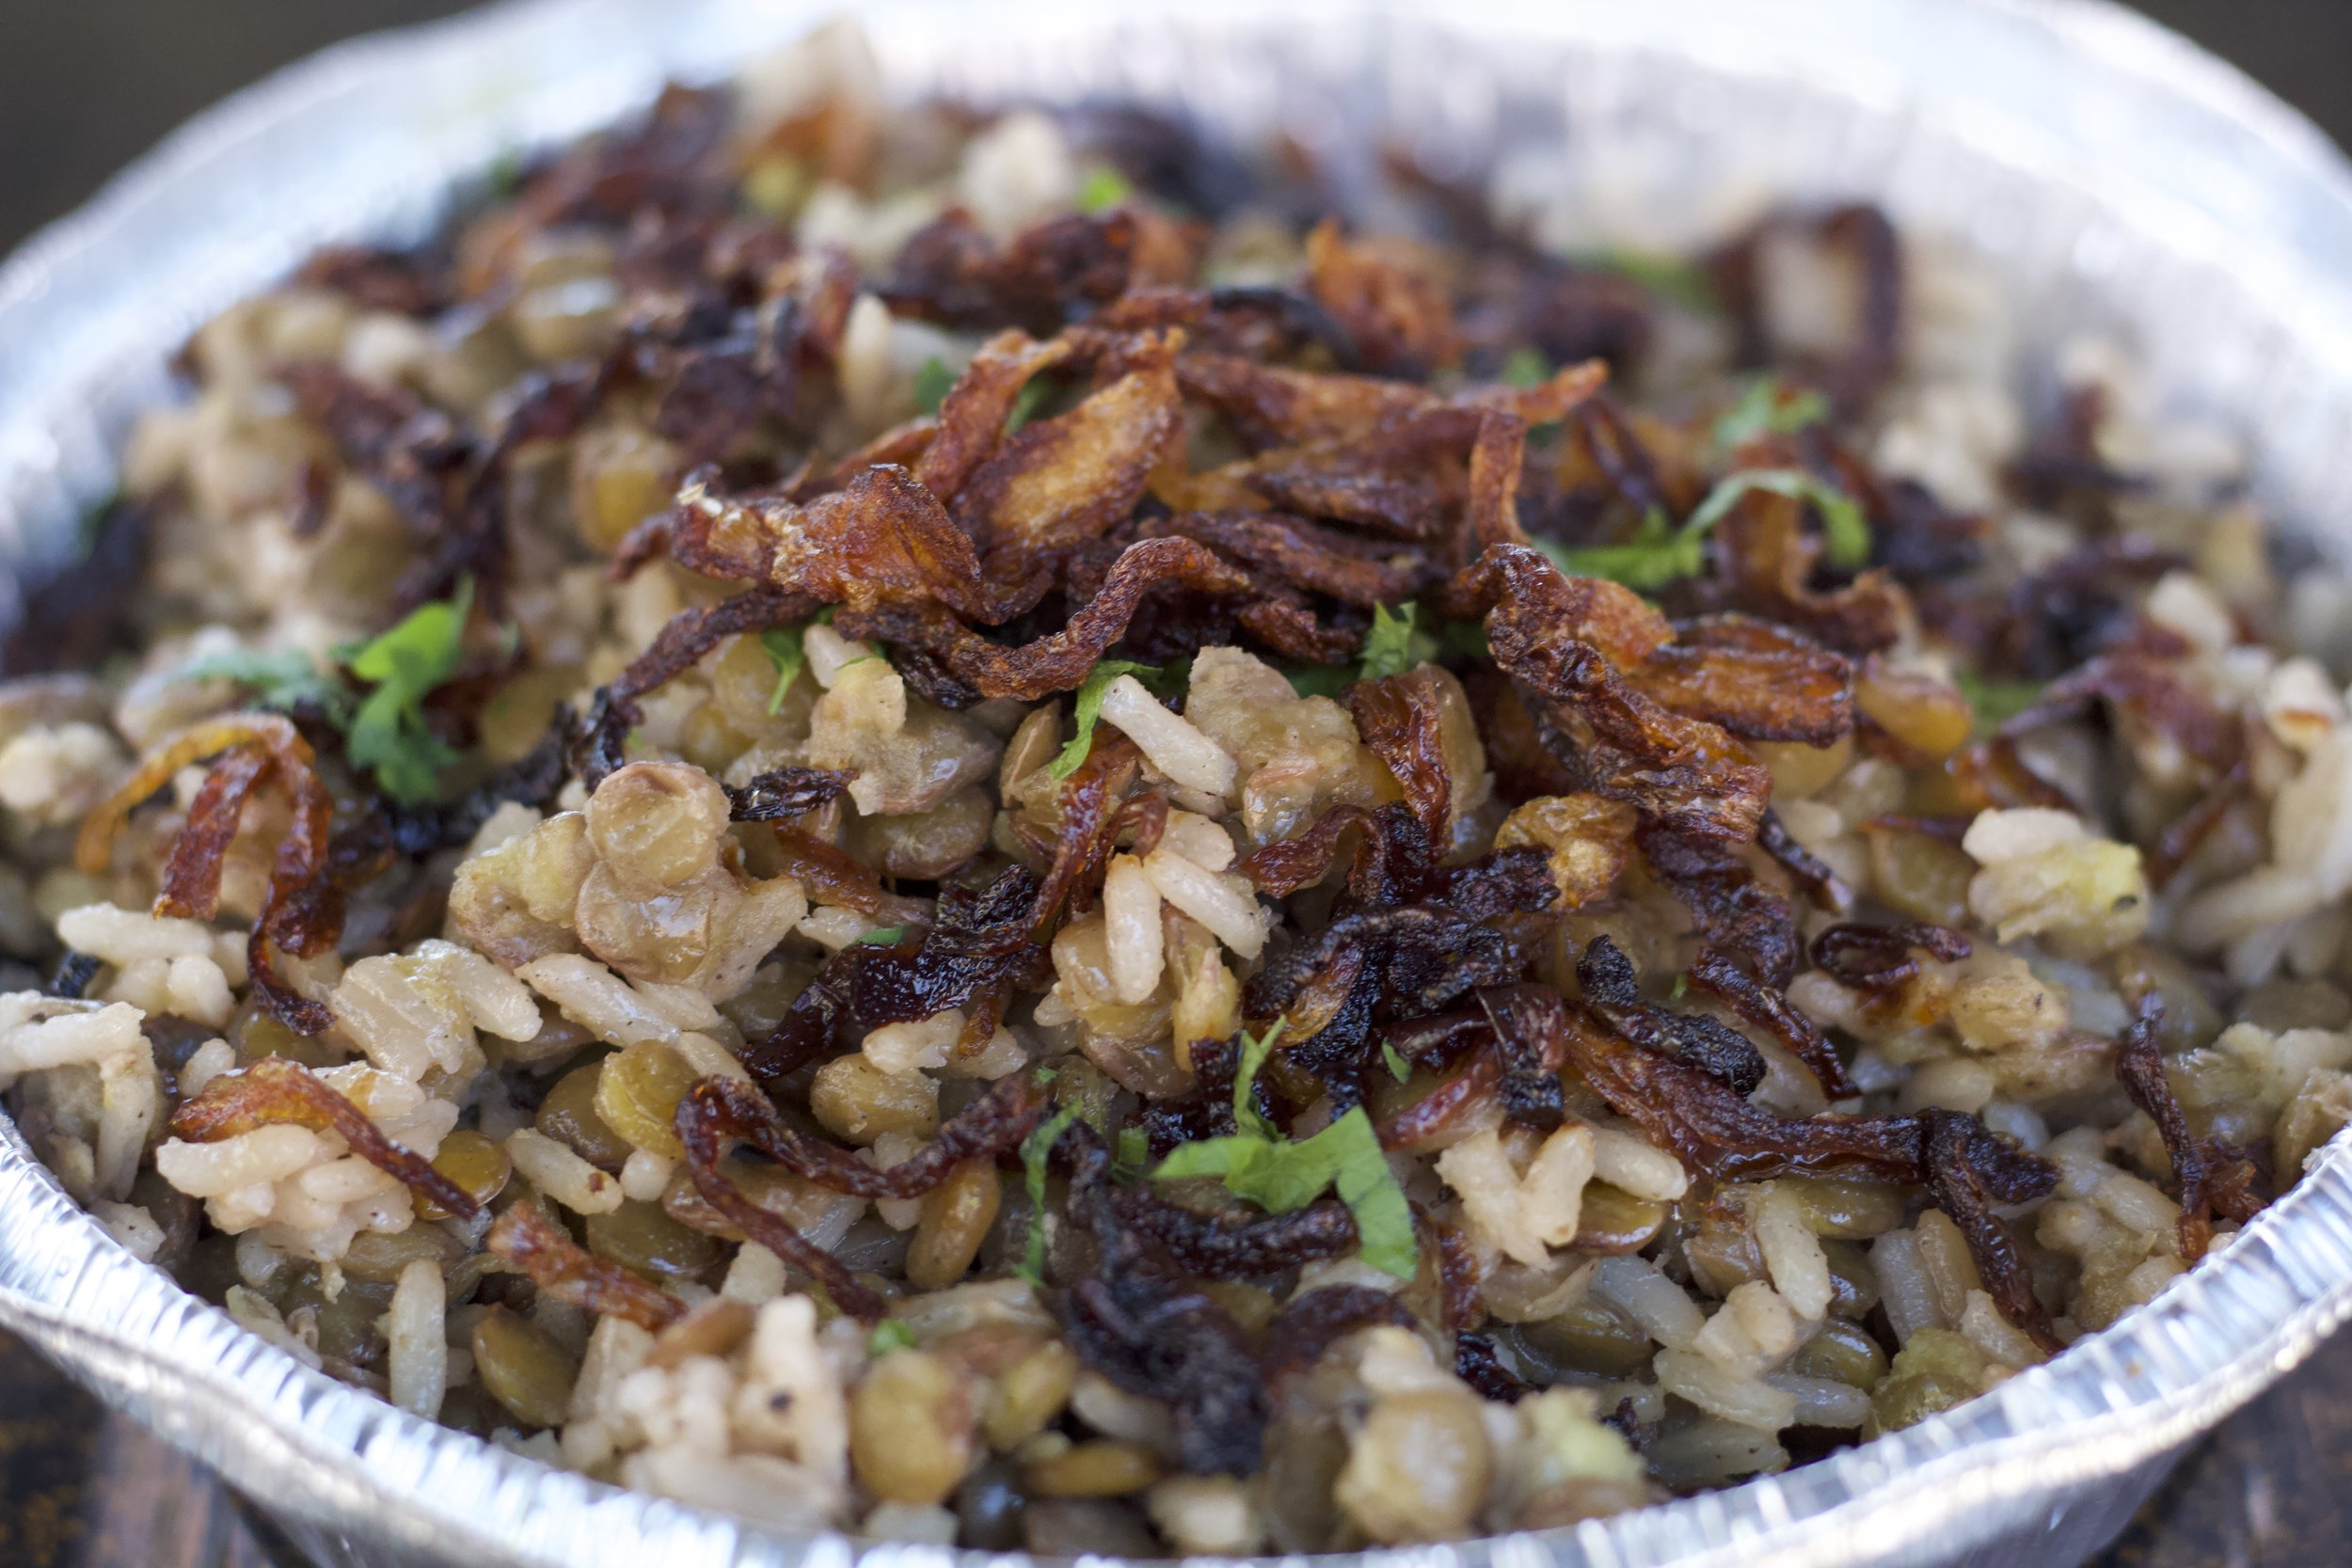 Rice with Lentils - $6.00